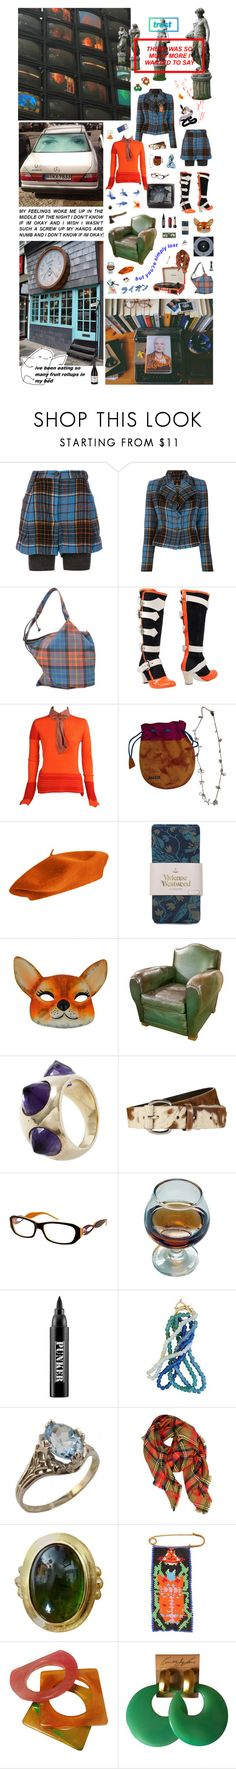 """""""Dame Vivienne Westwood is your only vintage punk unique way from the UK to Japan"""" by nothingisnormal ❤ liked on Polyvore featuring Vivienne Westwood Anglomania, Vivienne Westwood, Anzie, Anna Sui, Jade Jagger, Ardency Inn, LA77, Yves Saint Laurent, Kenneth Jay Lane and modern"""